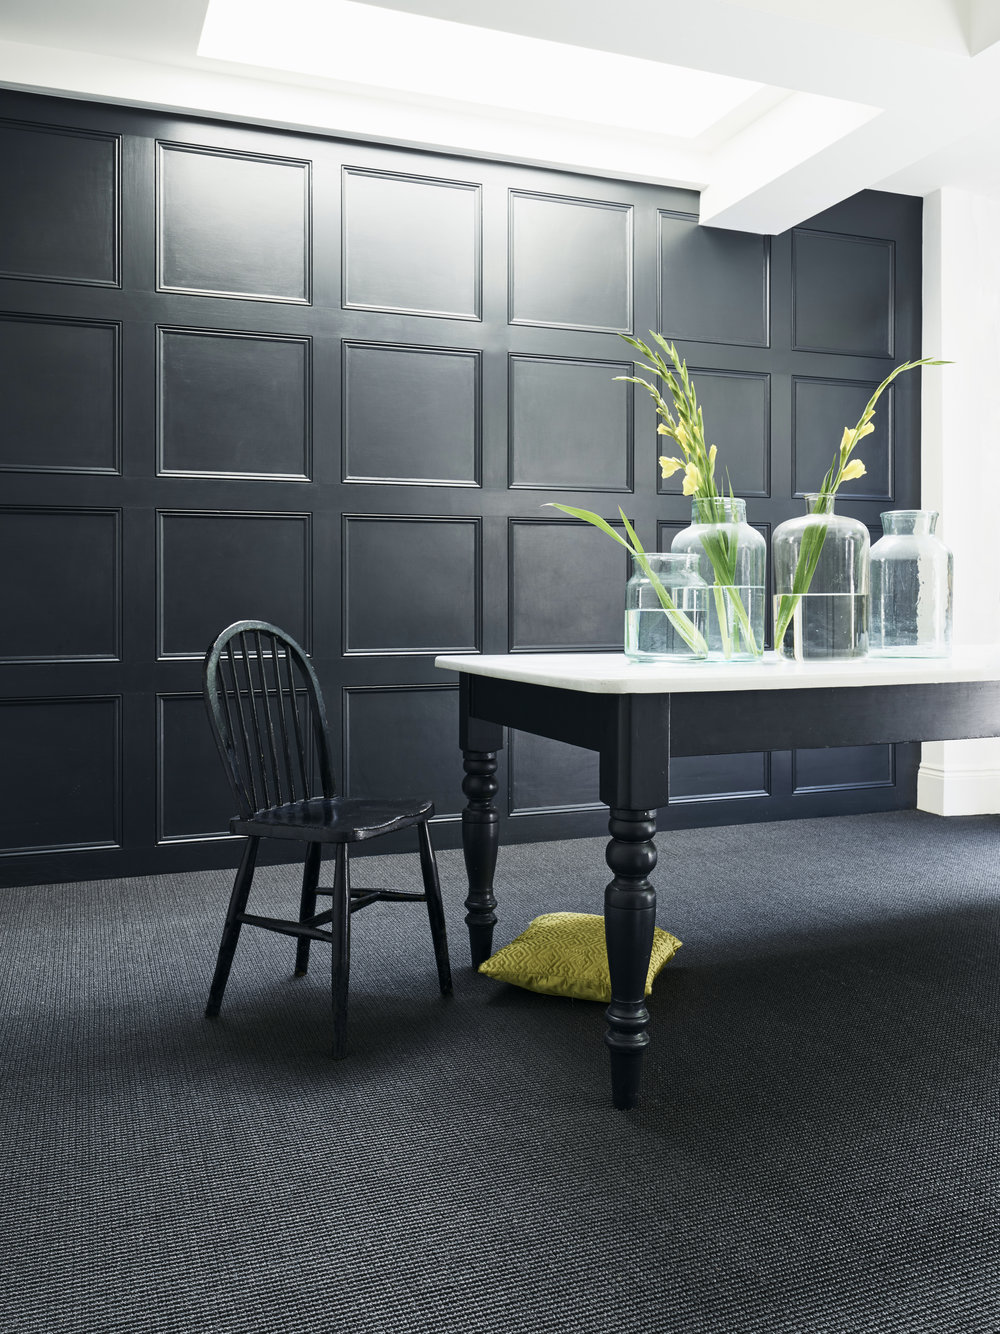 Big Boucle carpet in Noir by Kersaint Cobb